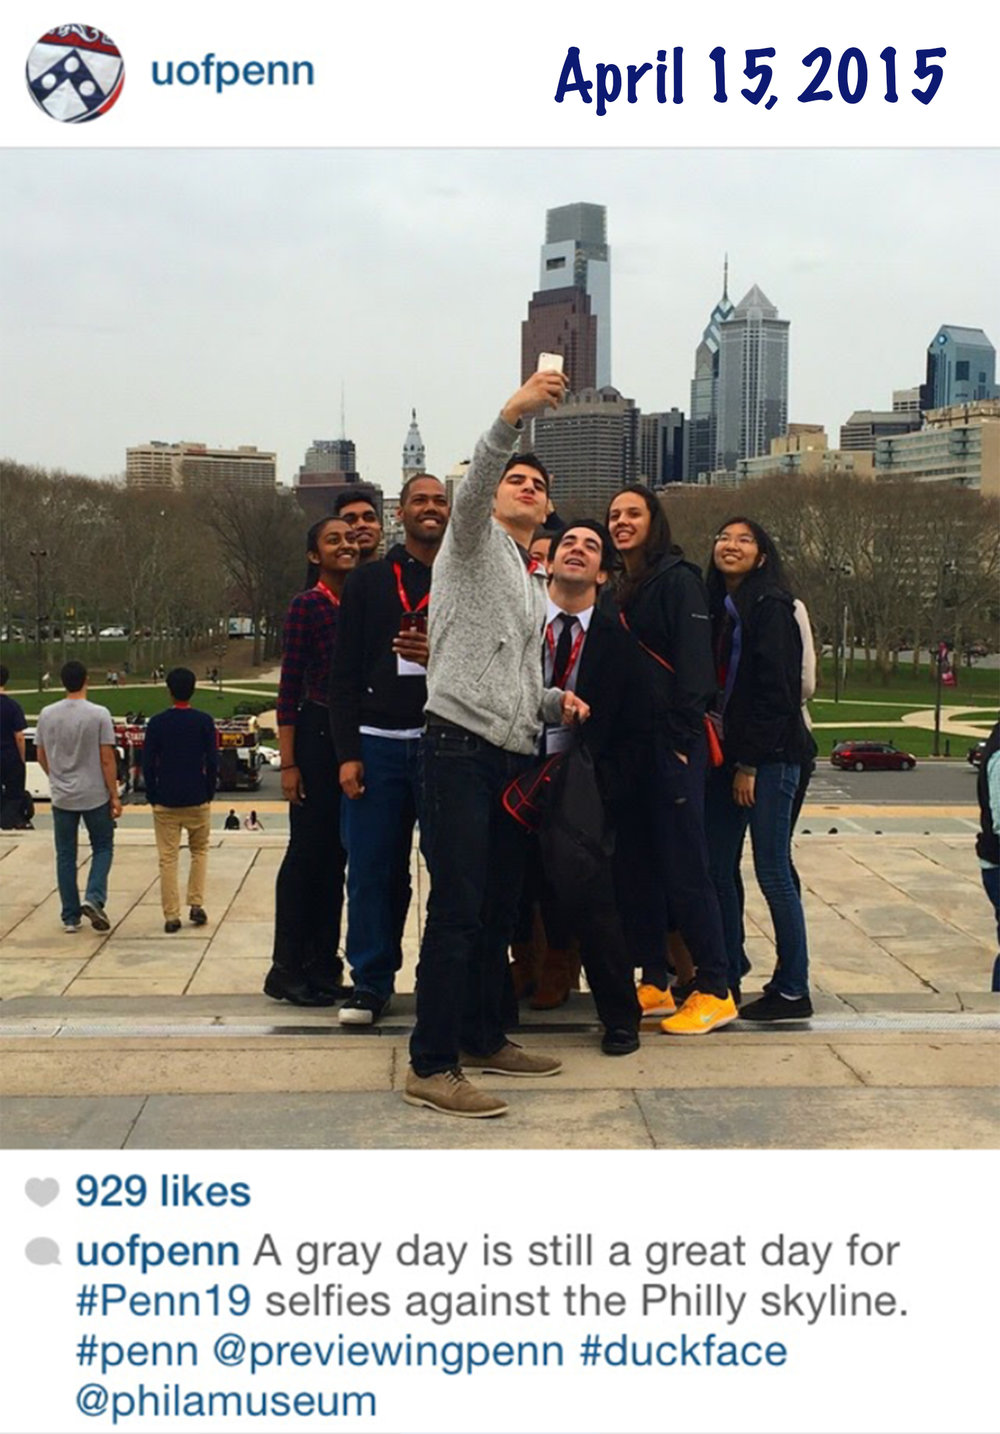 This is a screenshot of a post from Penn's Instagram from April 15, 2015. I had been accepted but had yet to commit.